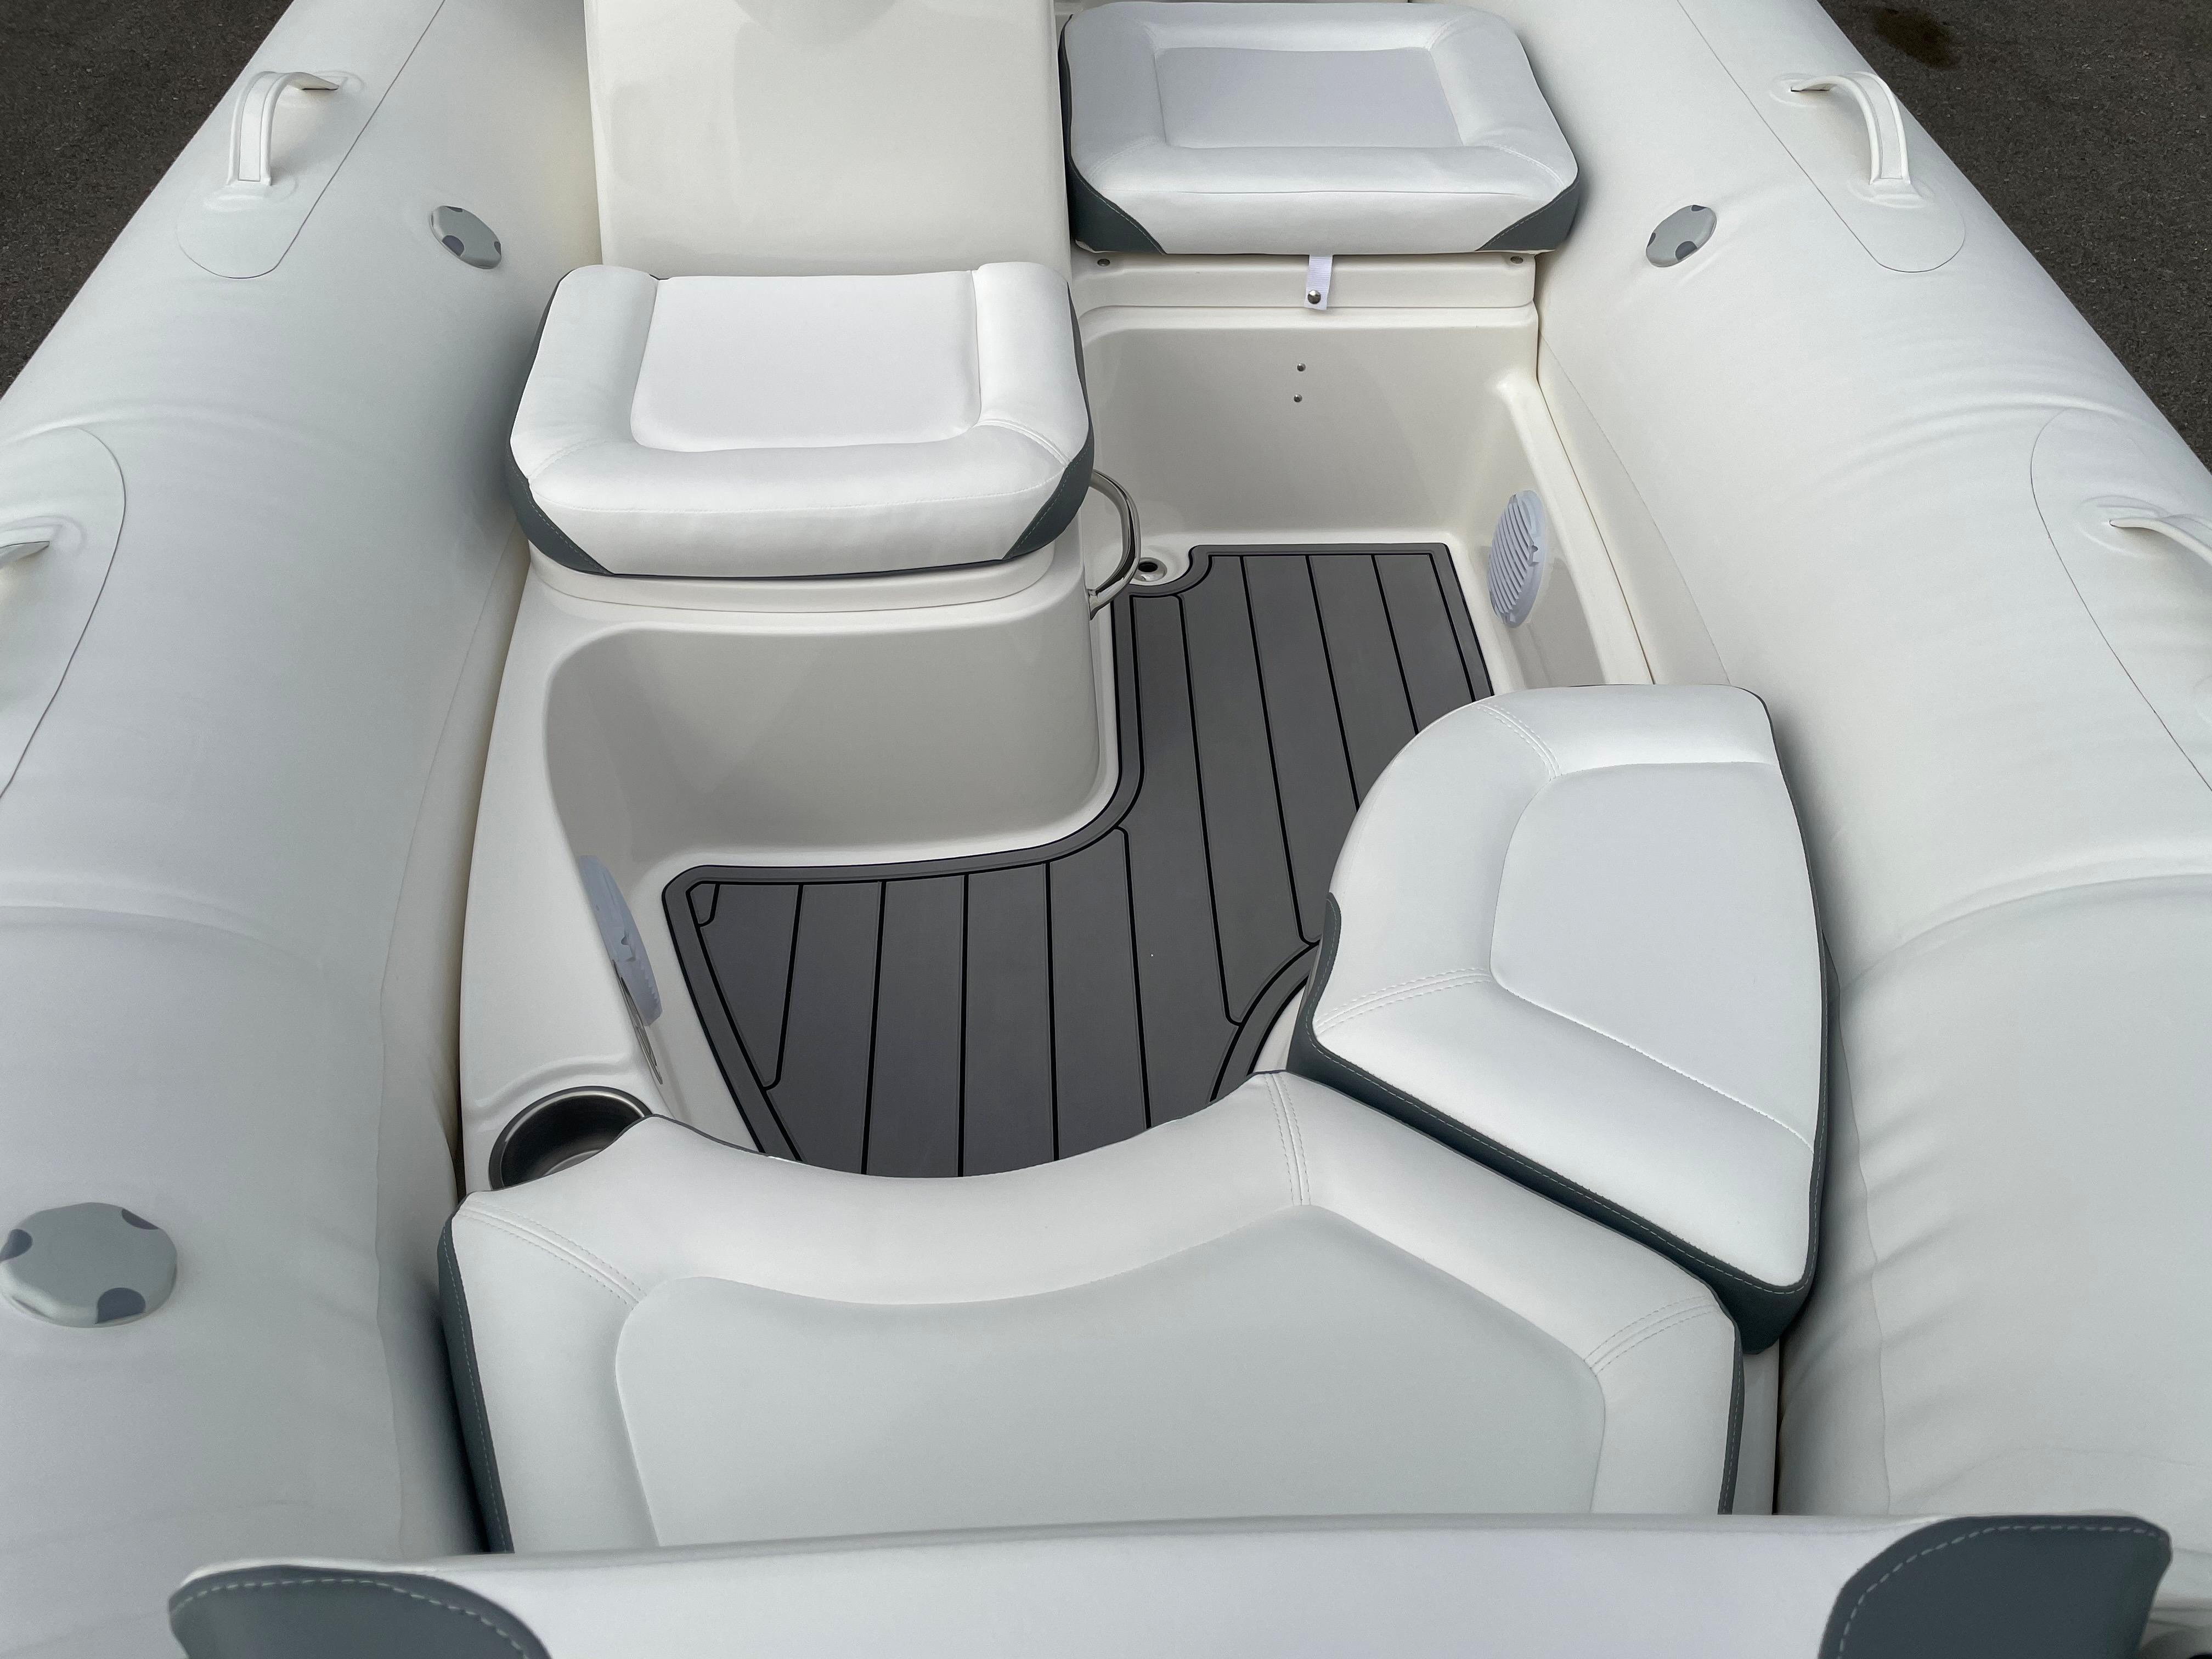 2022 Zodiac Yachtline 490 Deluxe NEO GL Edition 90hp On Order, Image 13